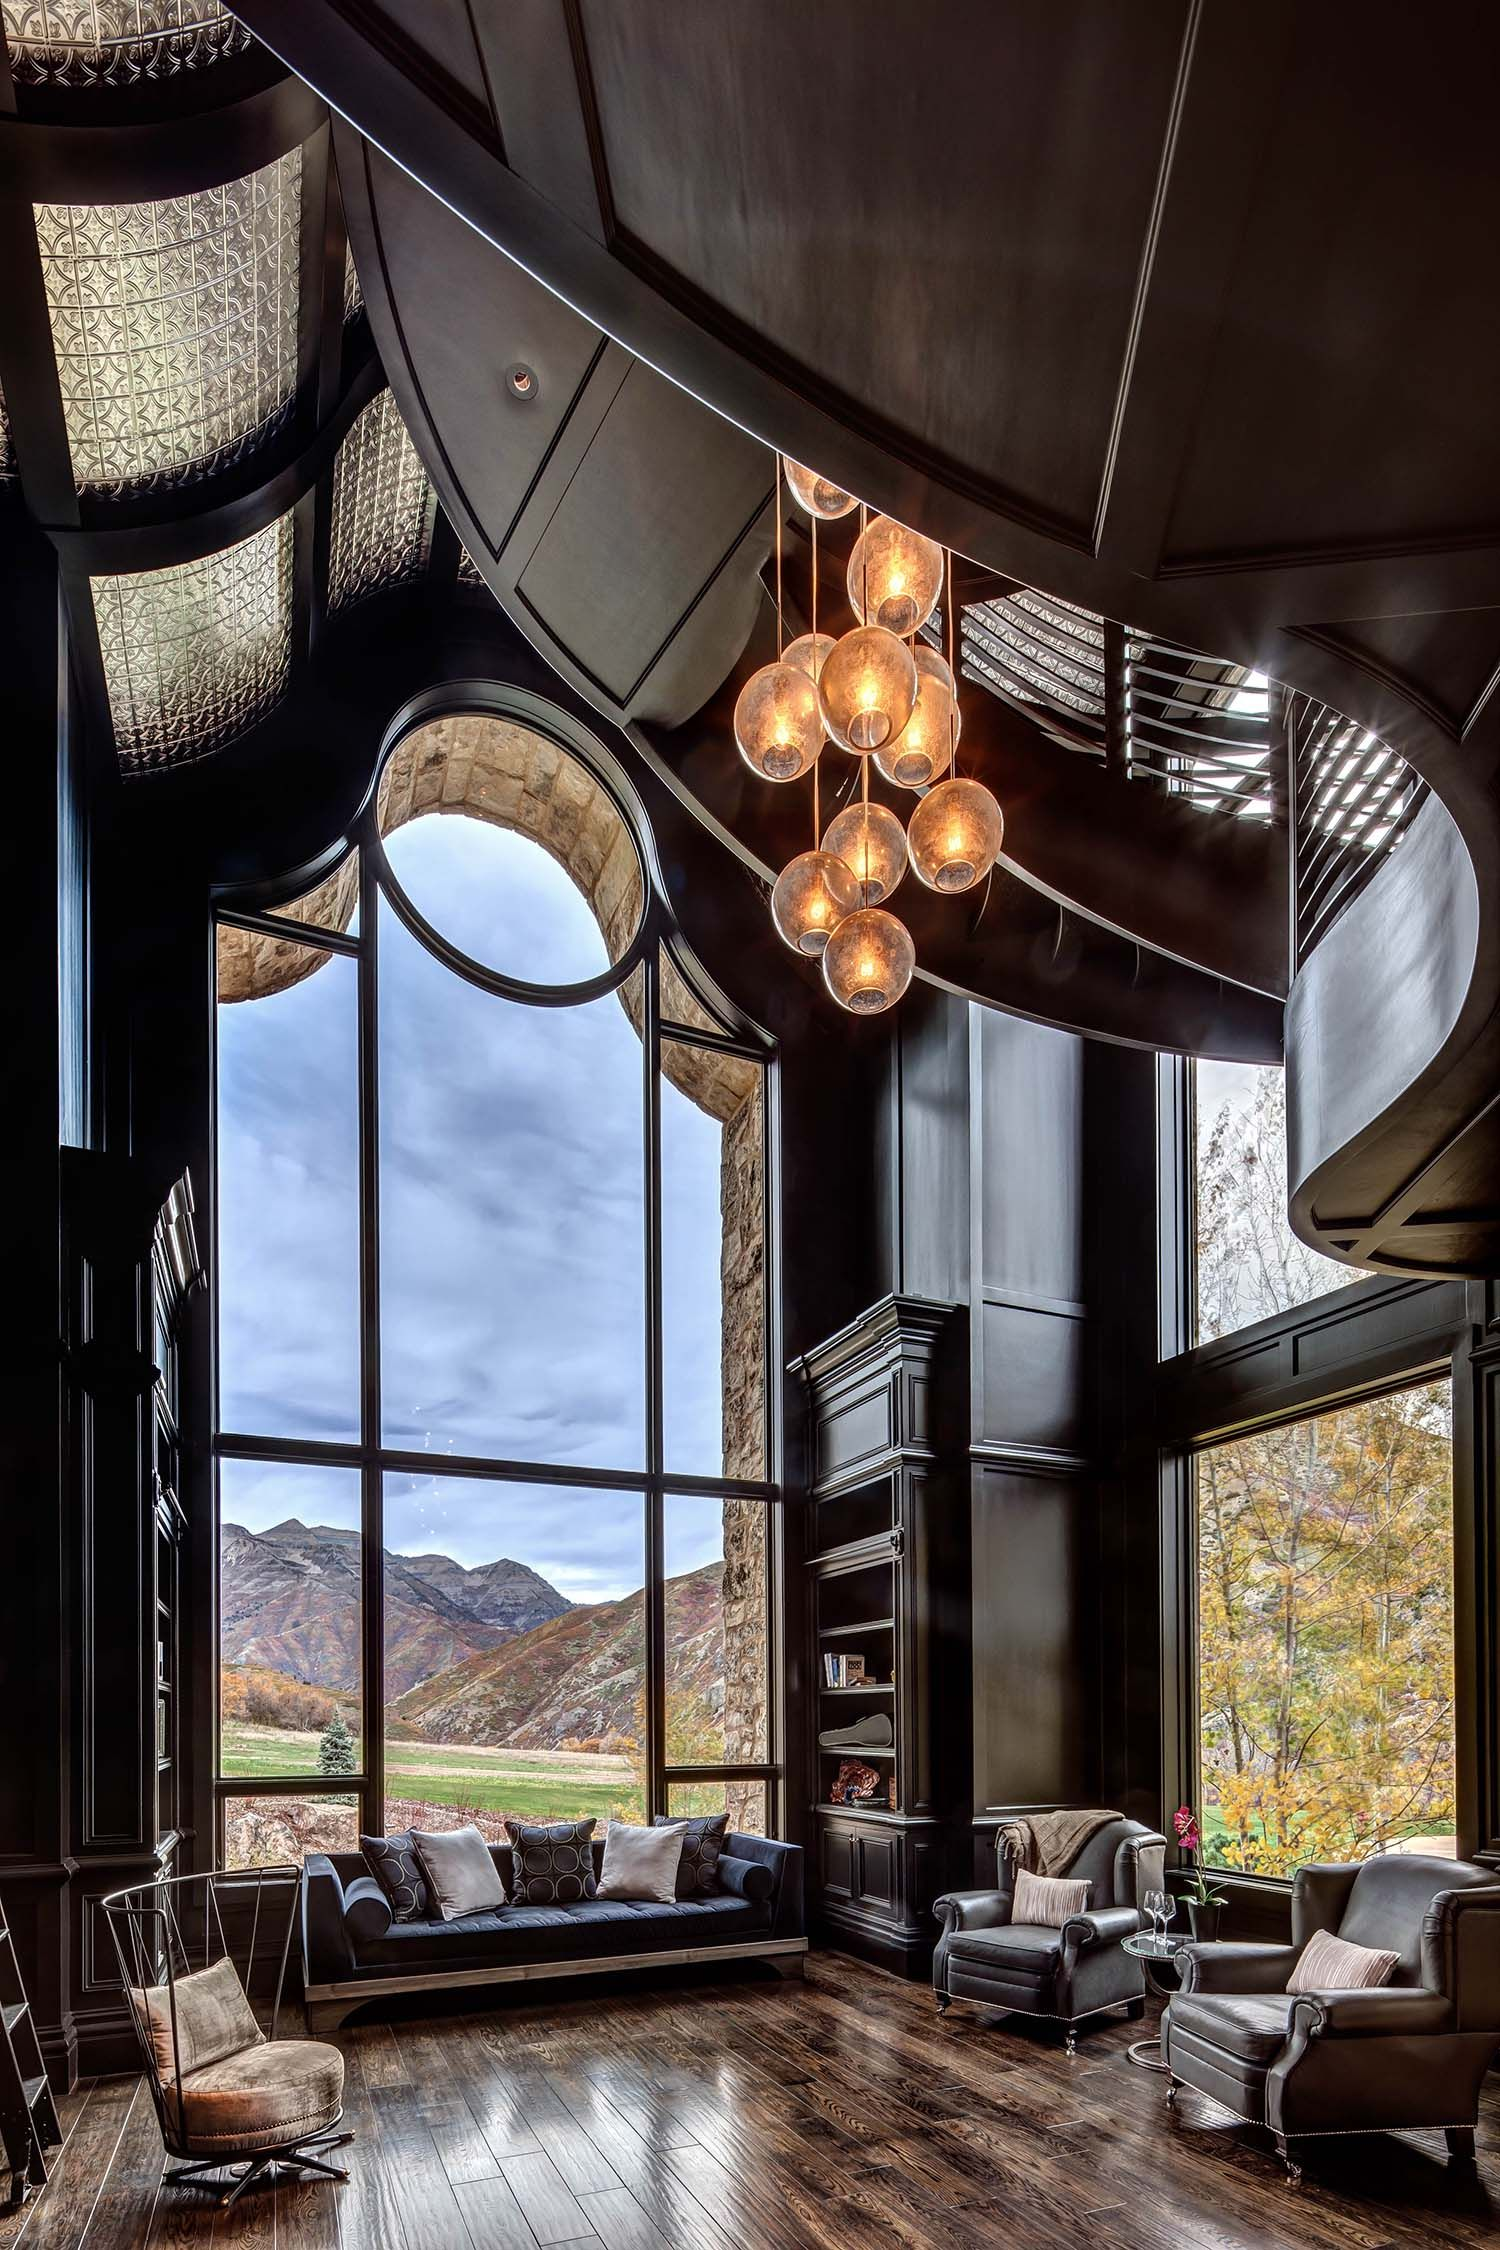 Luxury Home Study Rooms Library: Insane Mountain Dream Home With Views Of The Wasatch Range